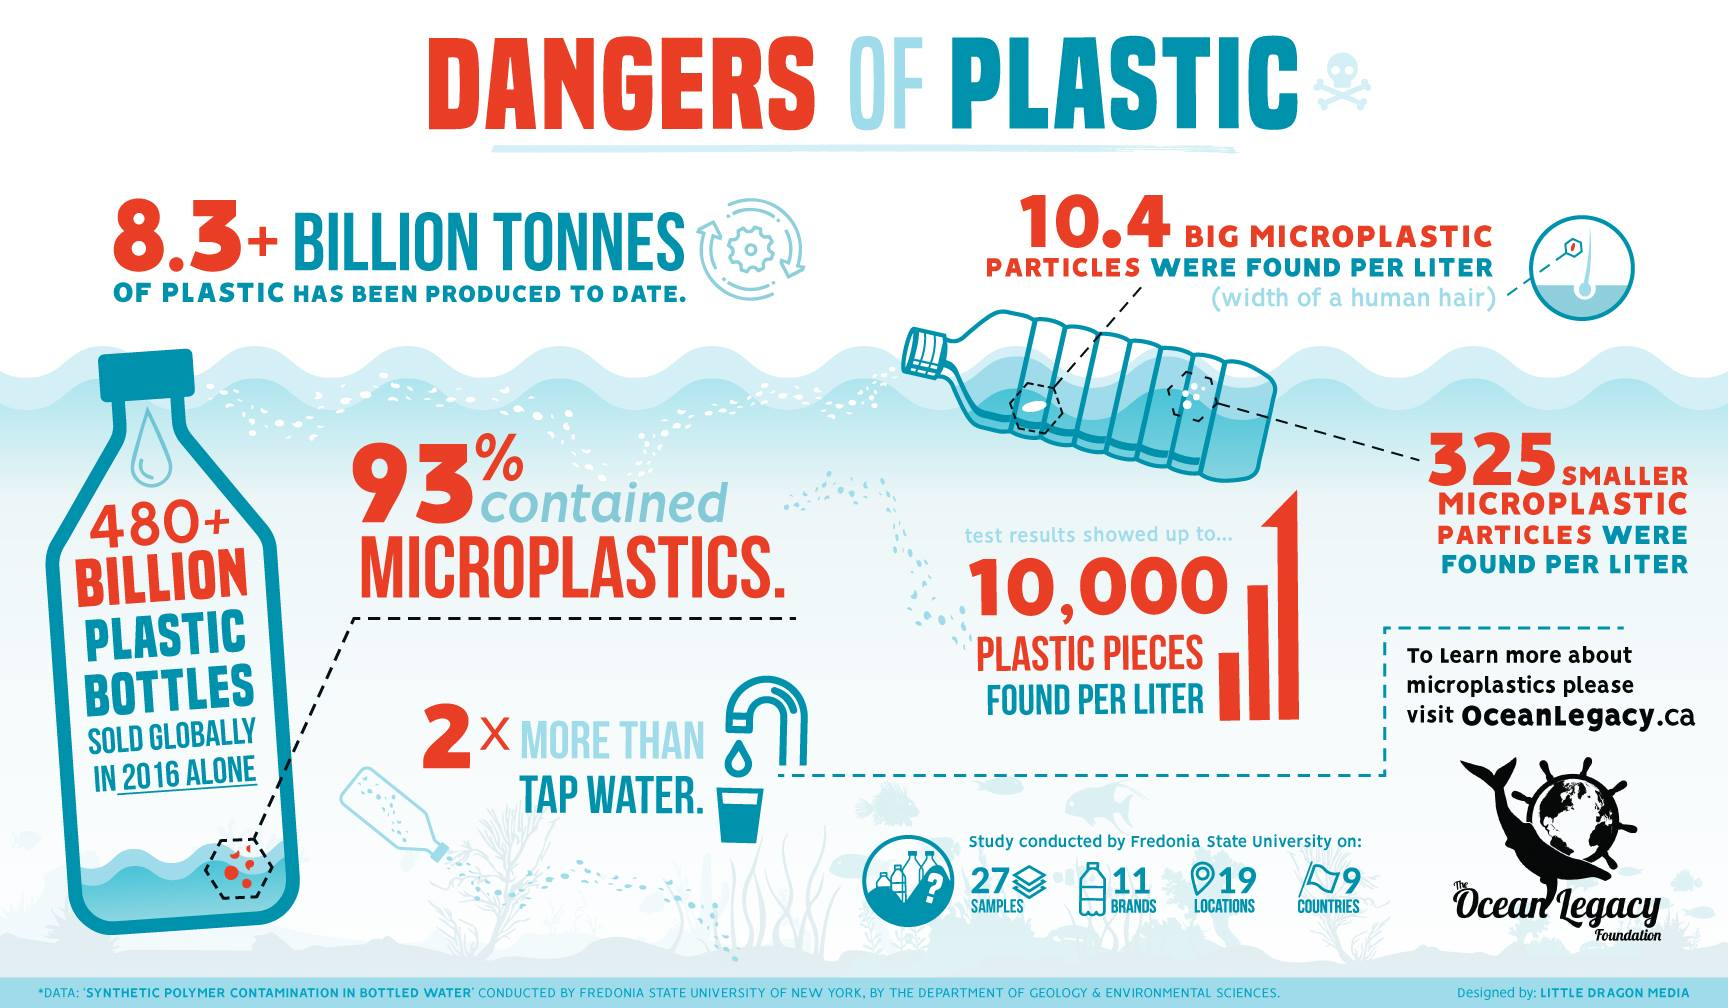 oceanlegacy_dangers of plastic infographic